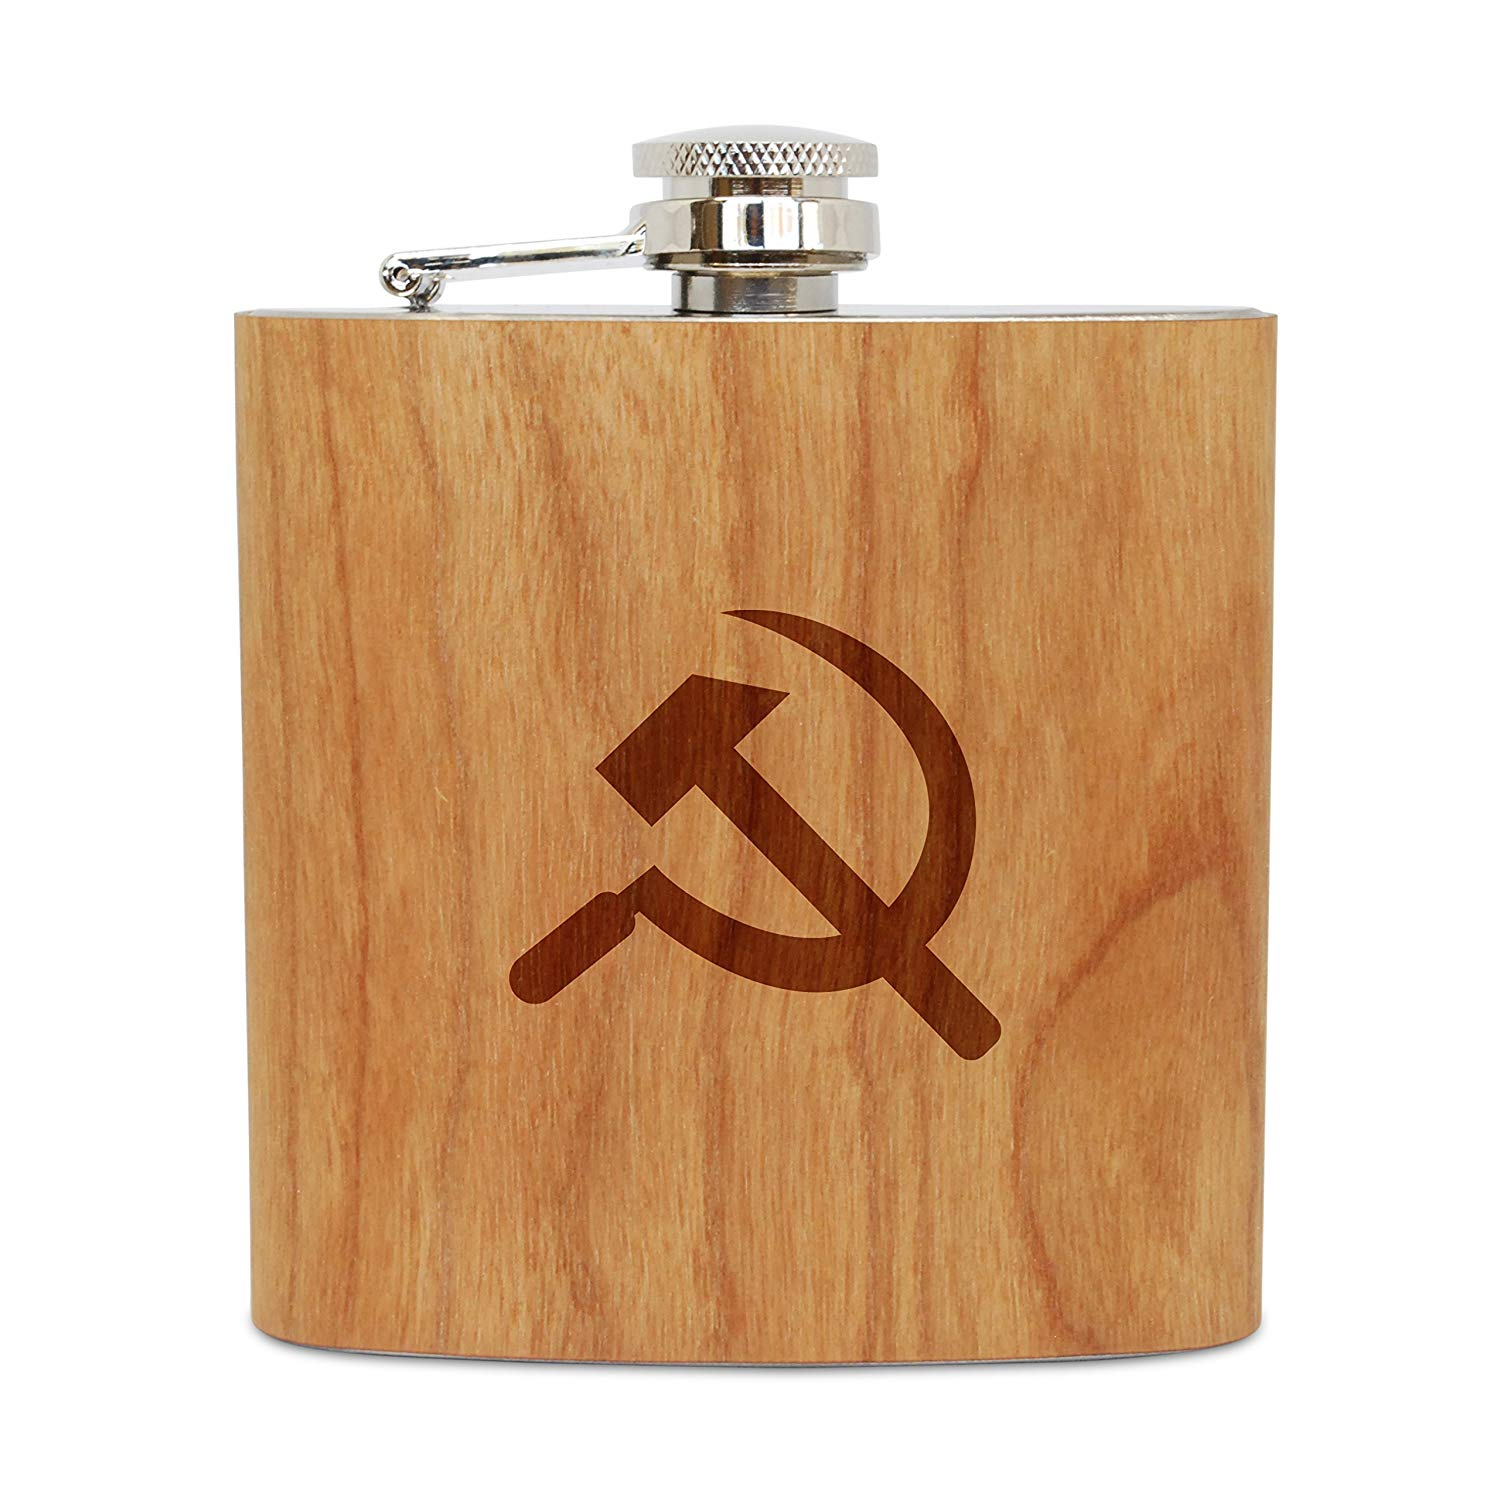 WOODEN ACCESSORIES COMPANY Cherry Wood Flask With Stainless Steel Body - Laser Engraved Flask With Communism Design - 6 Oz Wood Hip Flask Handmade In USA